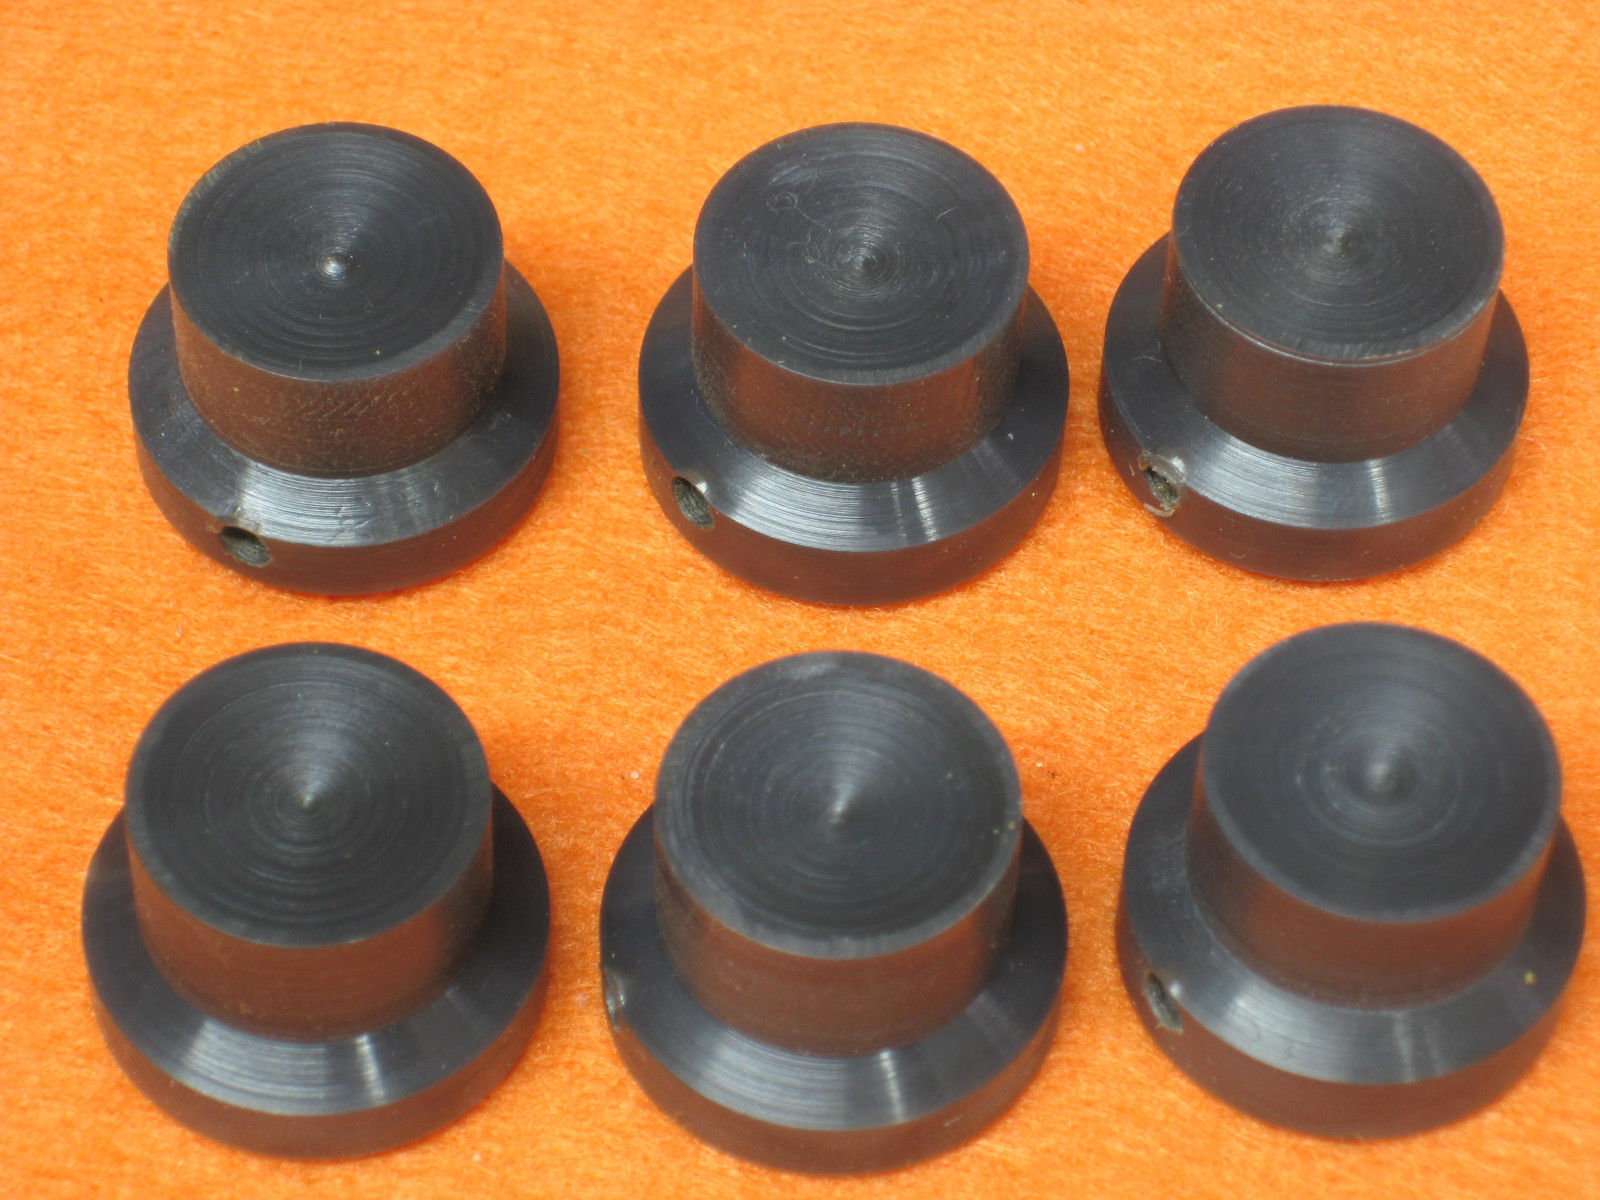 Knobs (one), Radio/Guitar, Hand-Crafted, Gray with 4mm Slot-Head Set Screw, #21